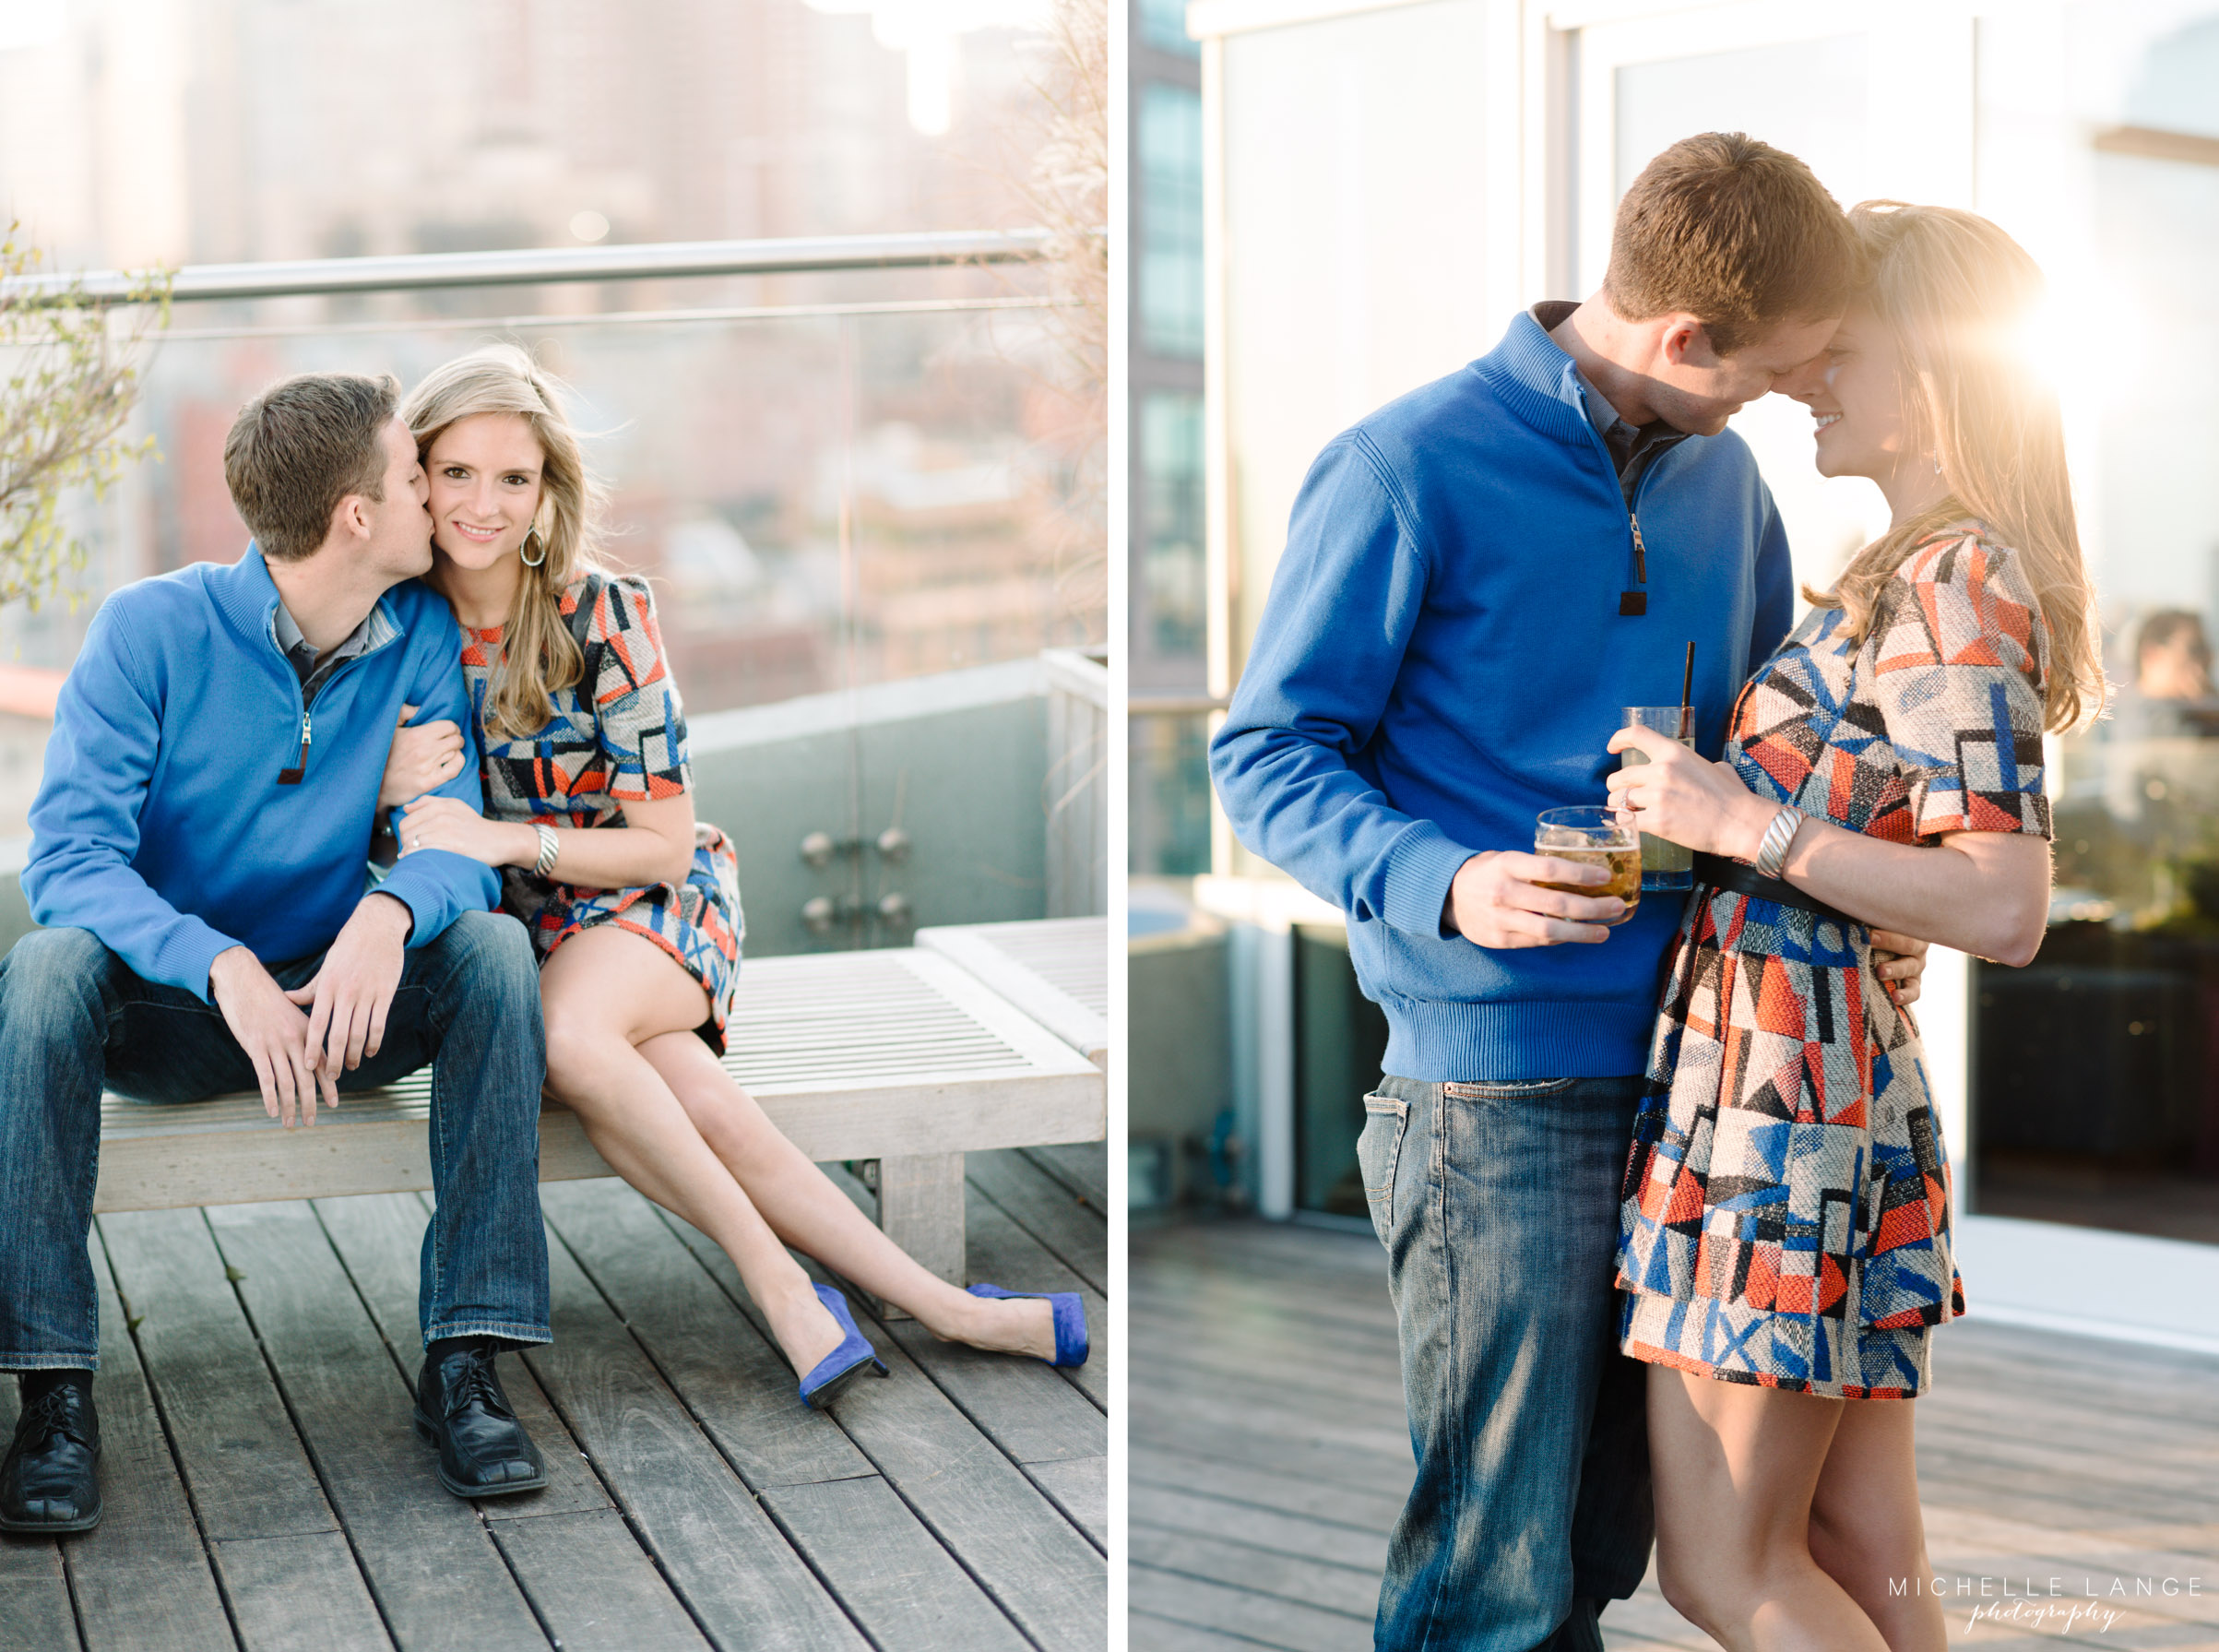 James Hotel Soho New York Engagement Photography